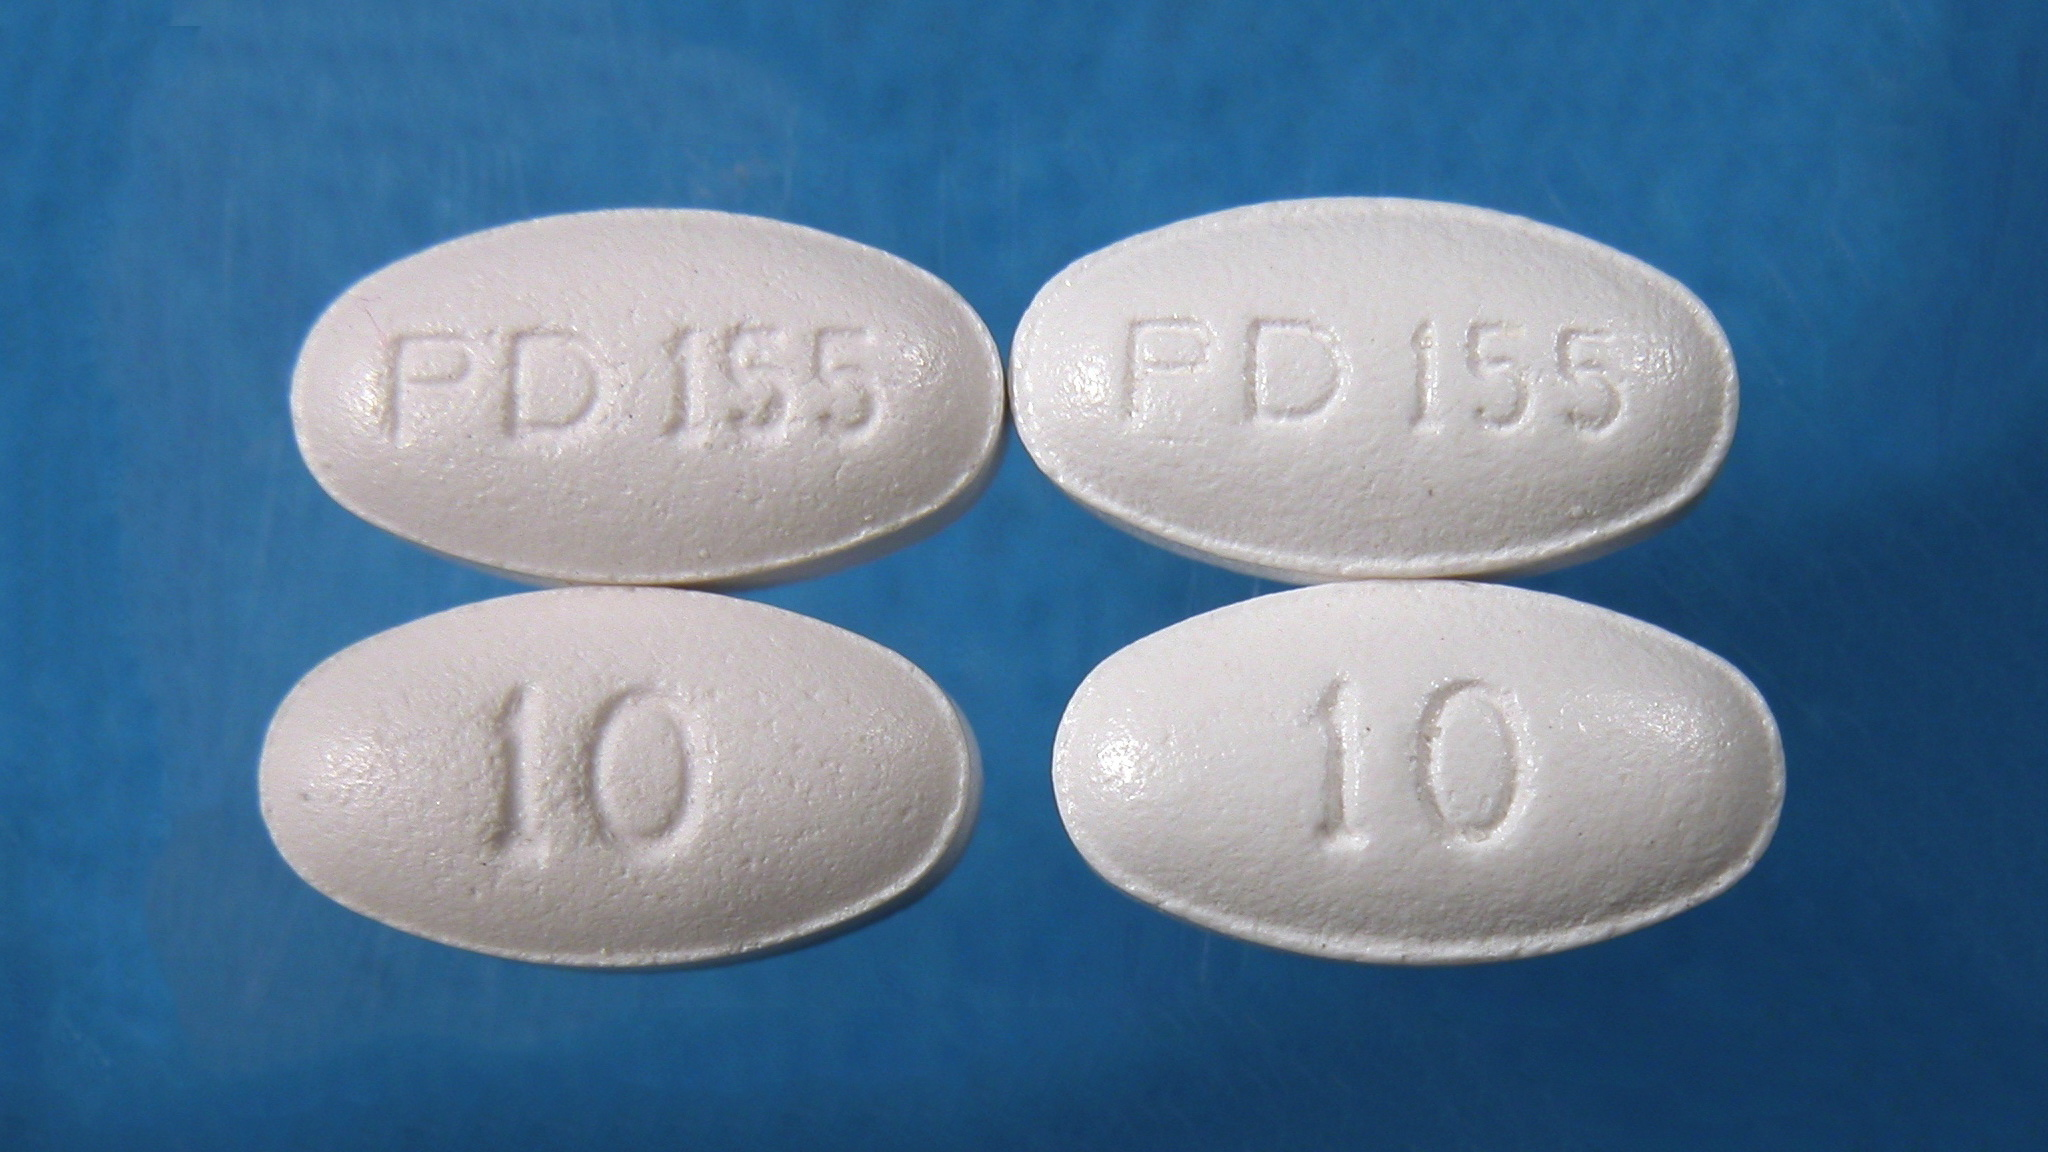 Drug viagra pill identification